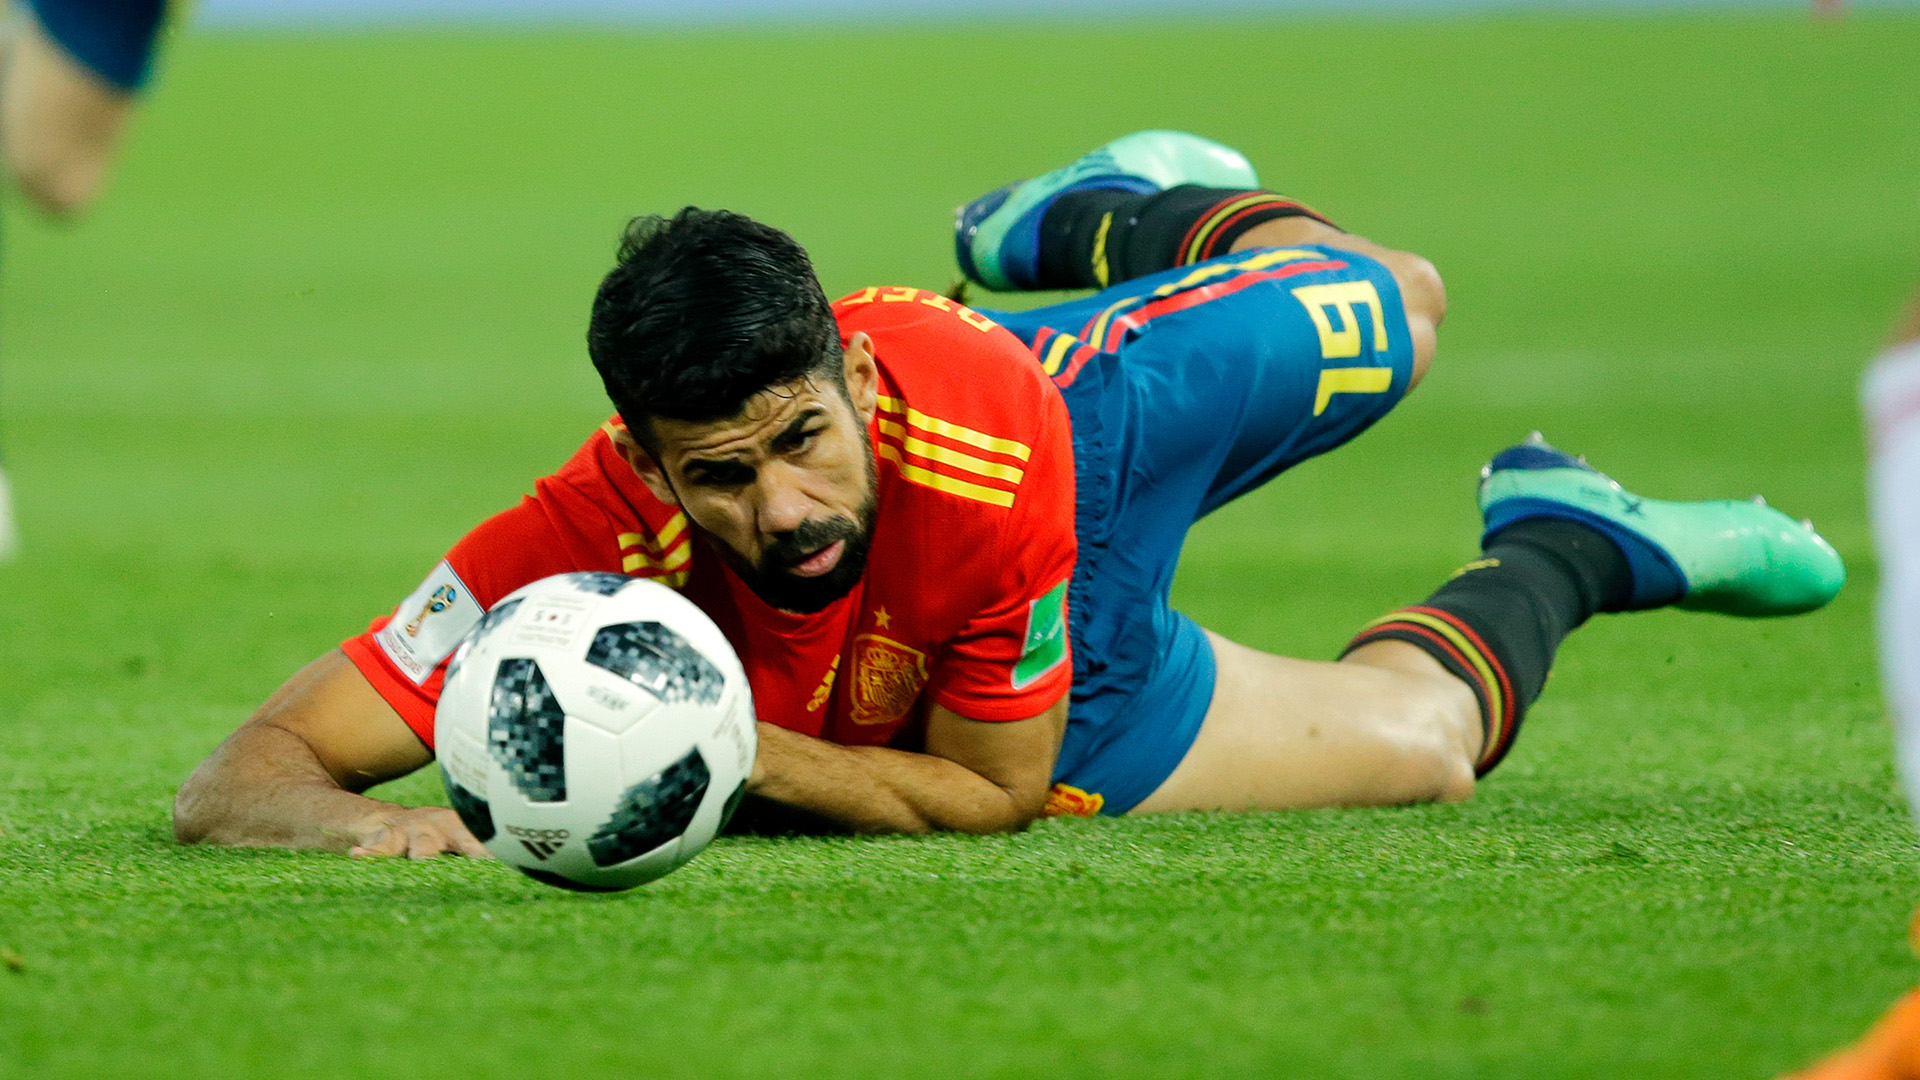 Diego Costa Spain Morocco World Cup 2018 250618